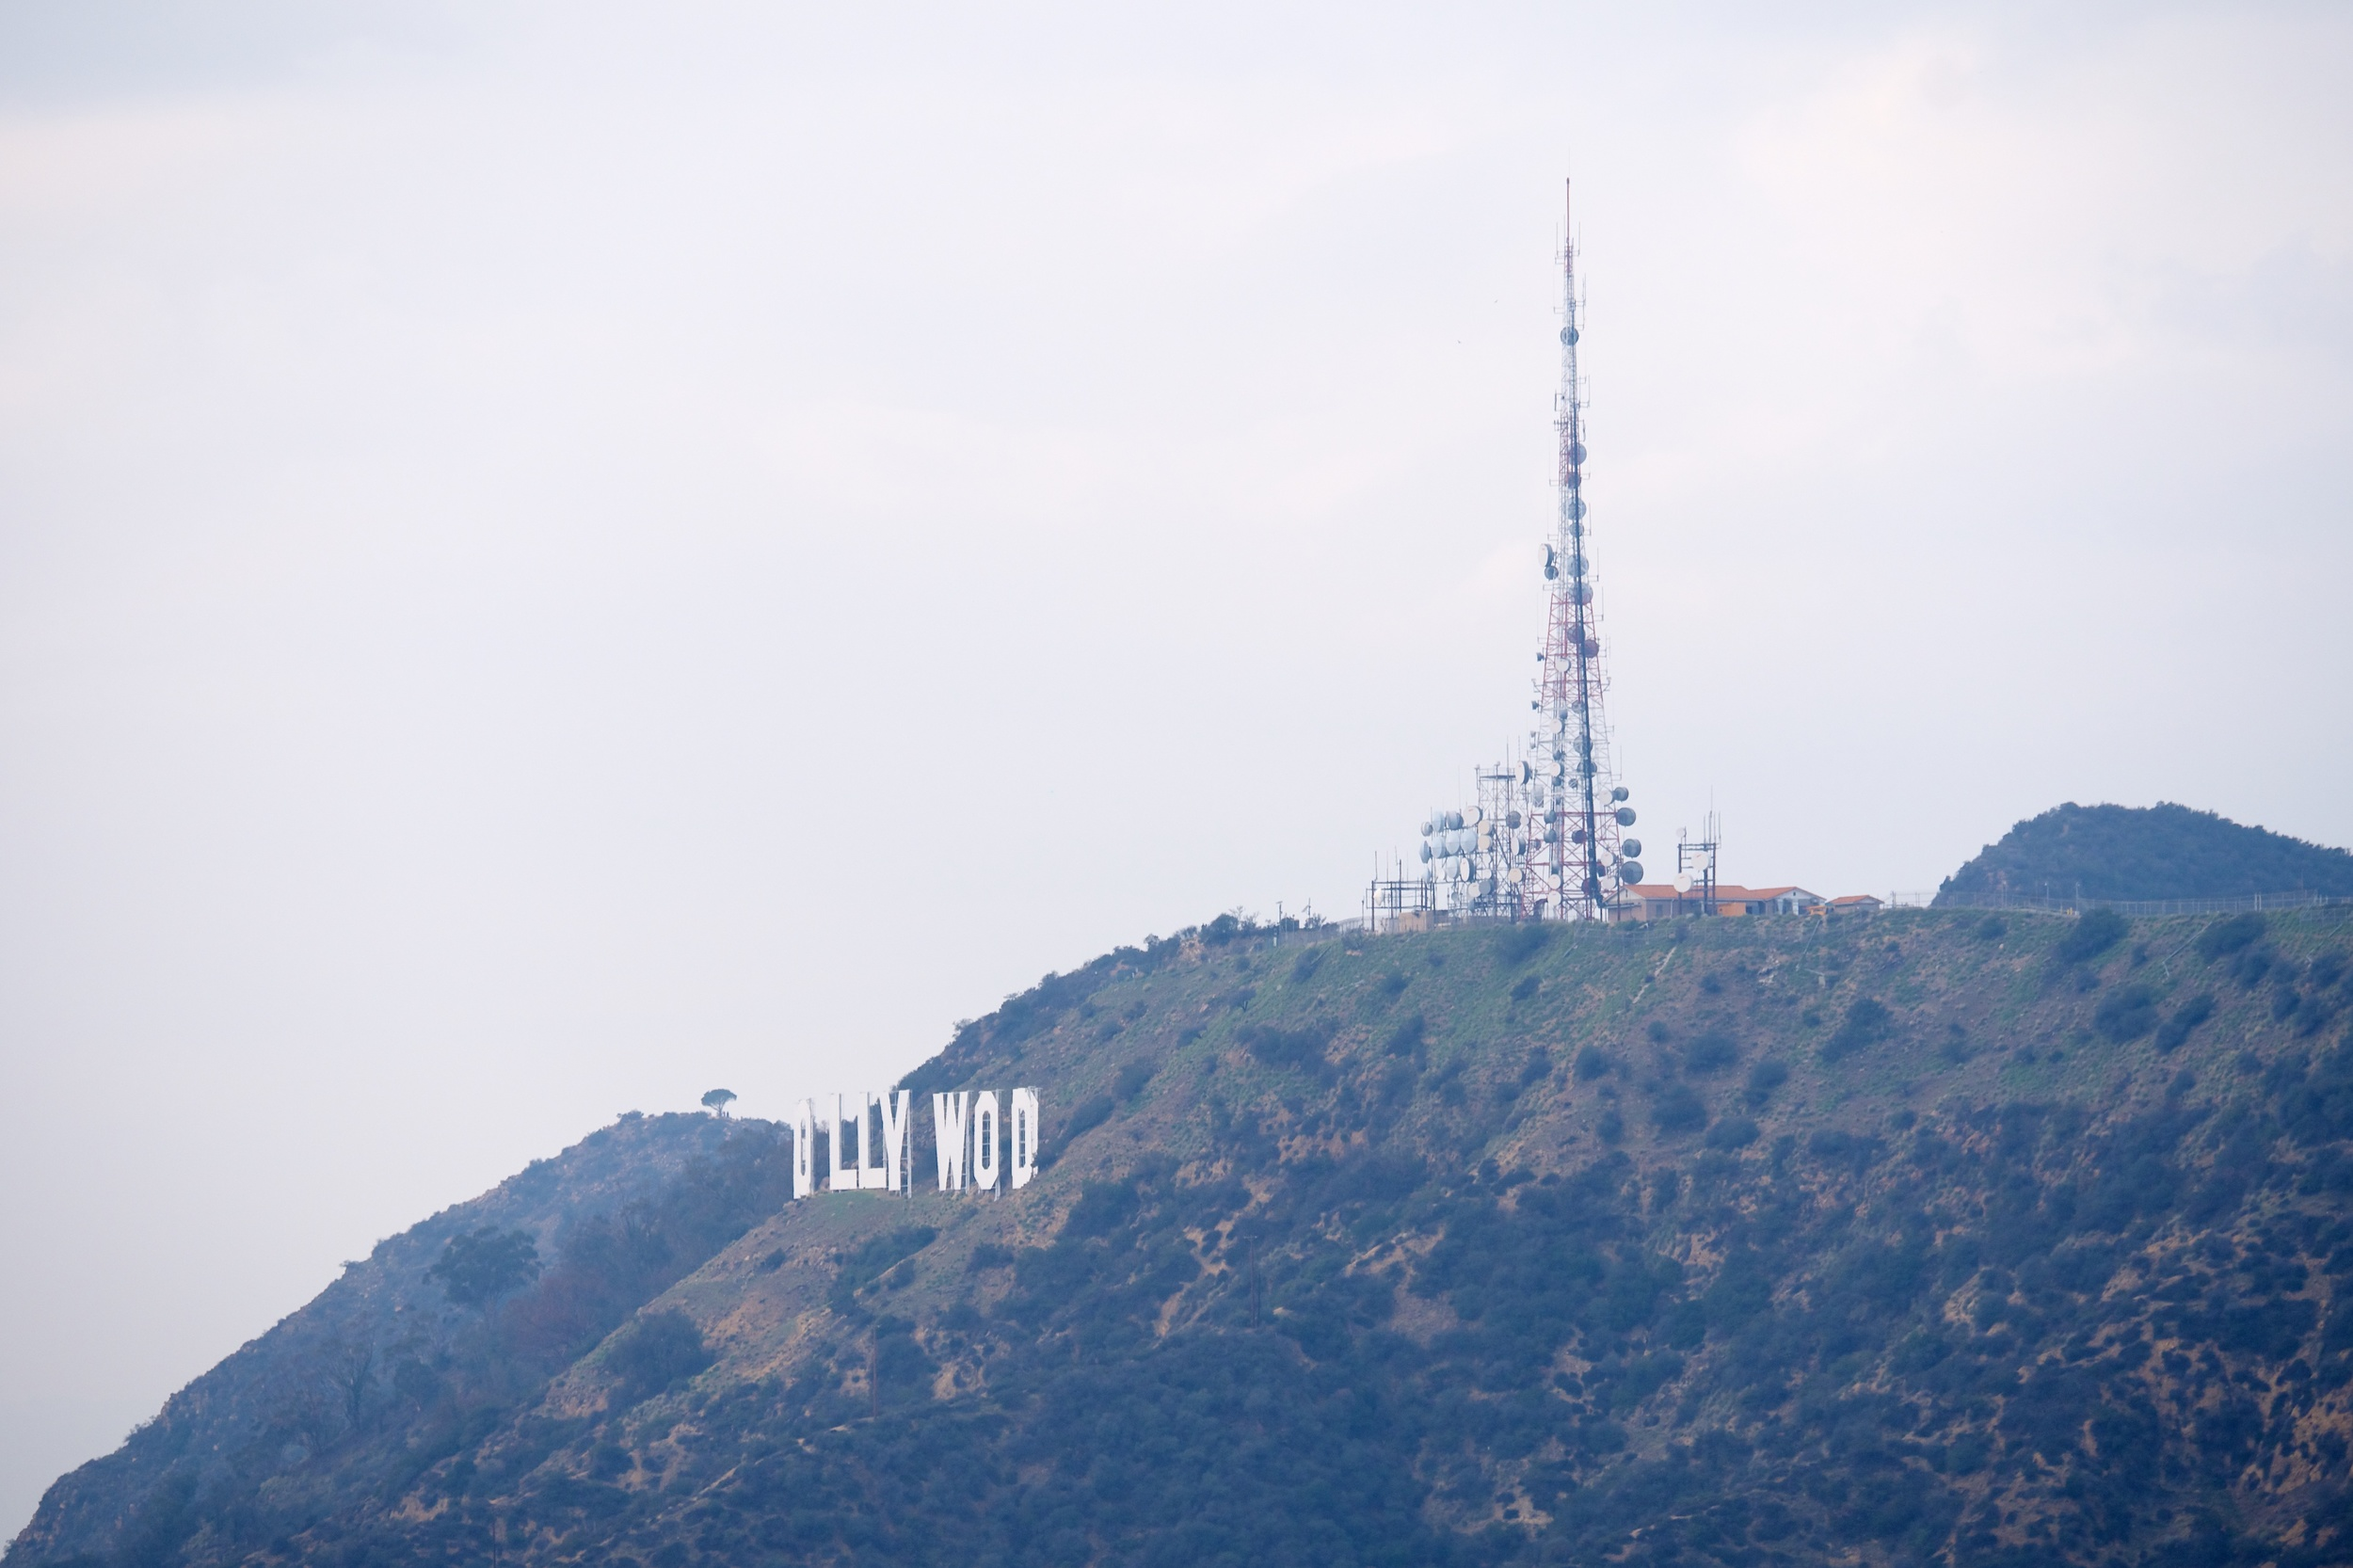 """Since the letters of the Hollywood sign aren't all in a row, sometimes you don't see all of them from some angles, such as here where you only see """"OLLYWOD"""""""